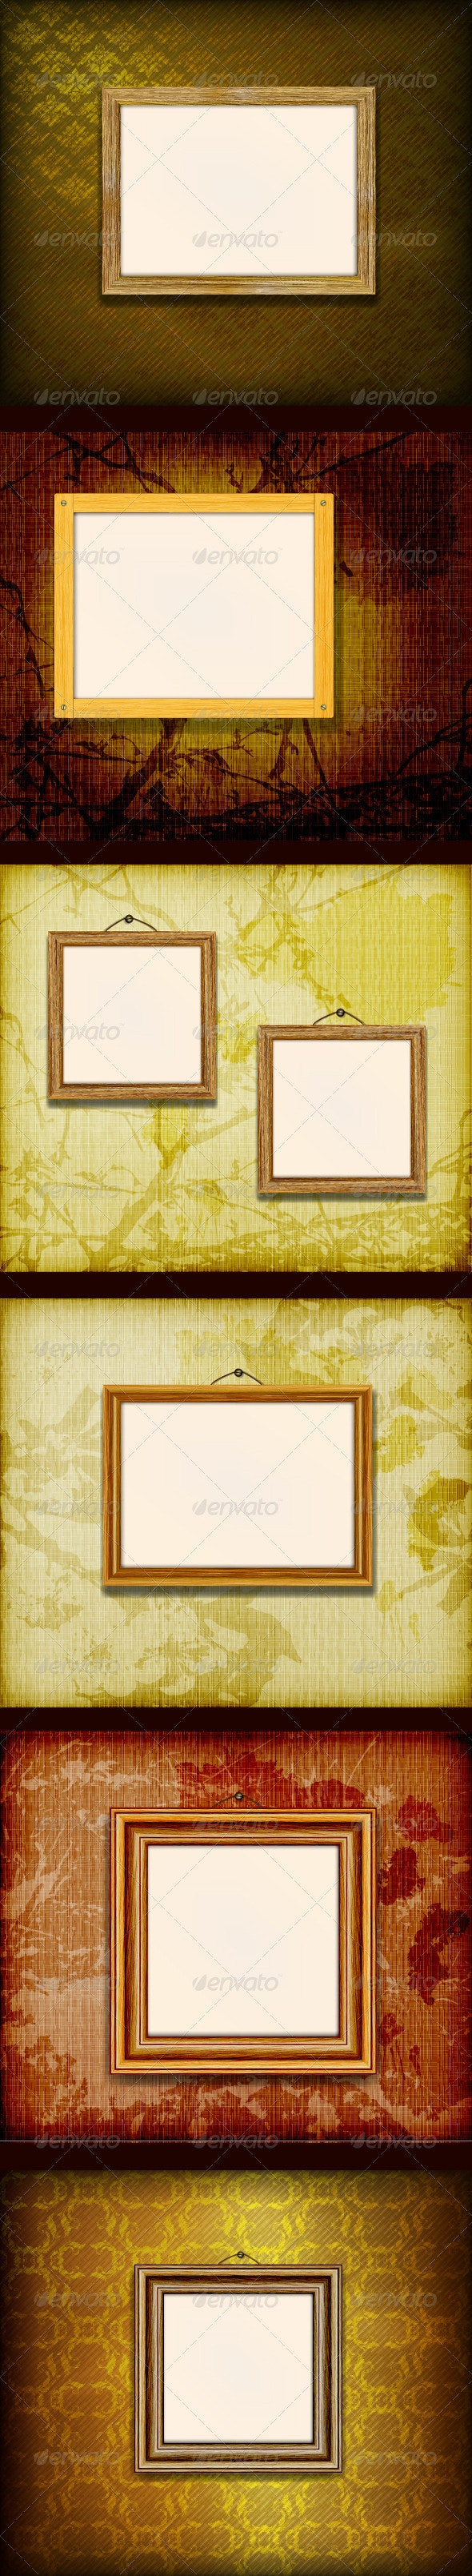 Wood Frames on a different Grunge Background - Backgrounds Decorative